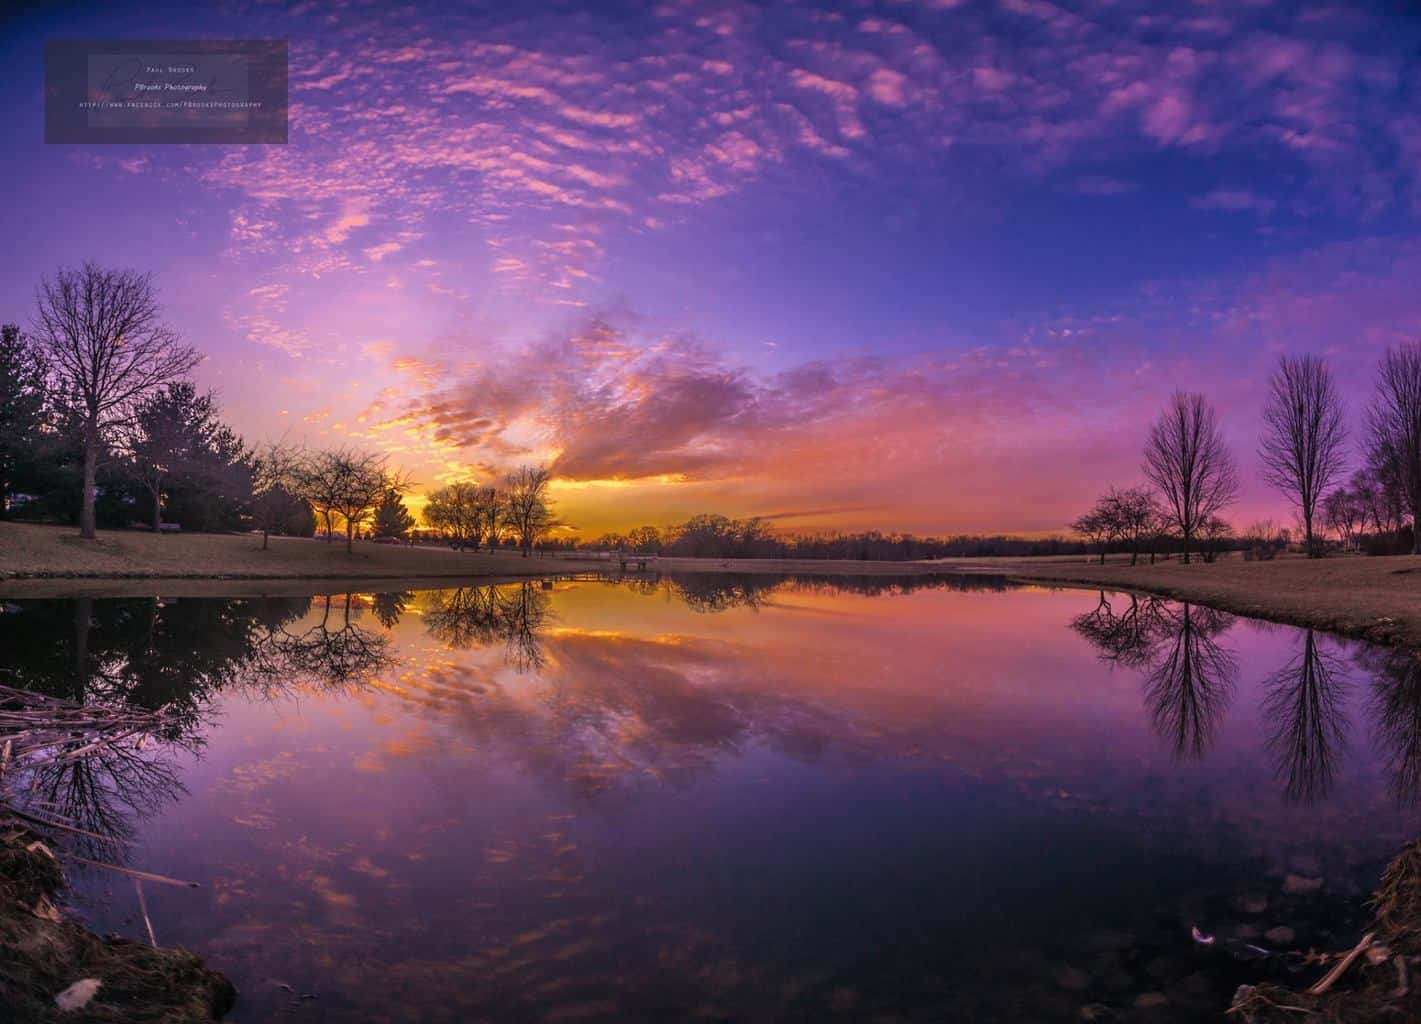 Sunset at Discovery Park, Muscatine, Iowa this past Saturday. 9 image vertical panoramic stitch, ISO 400, f2.8, 1/1000th, with a Sony A7ii.